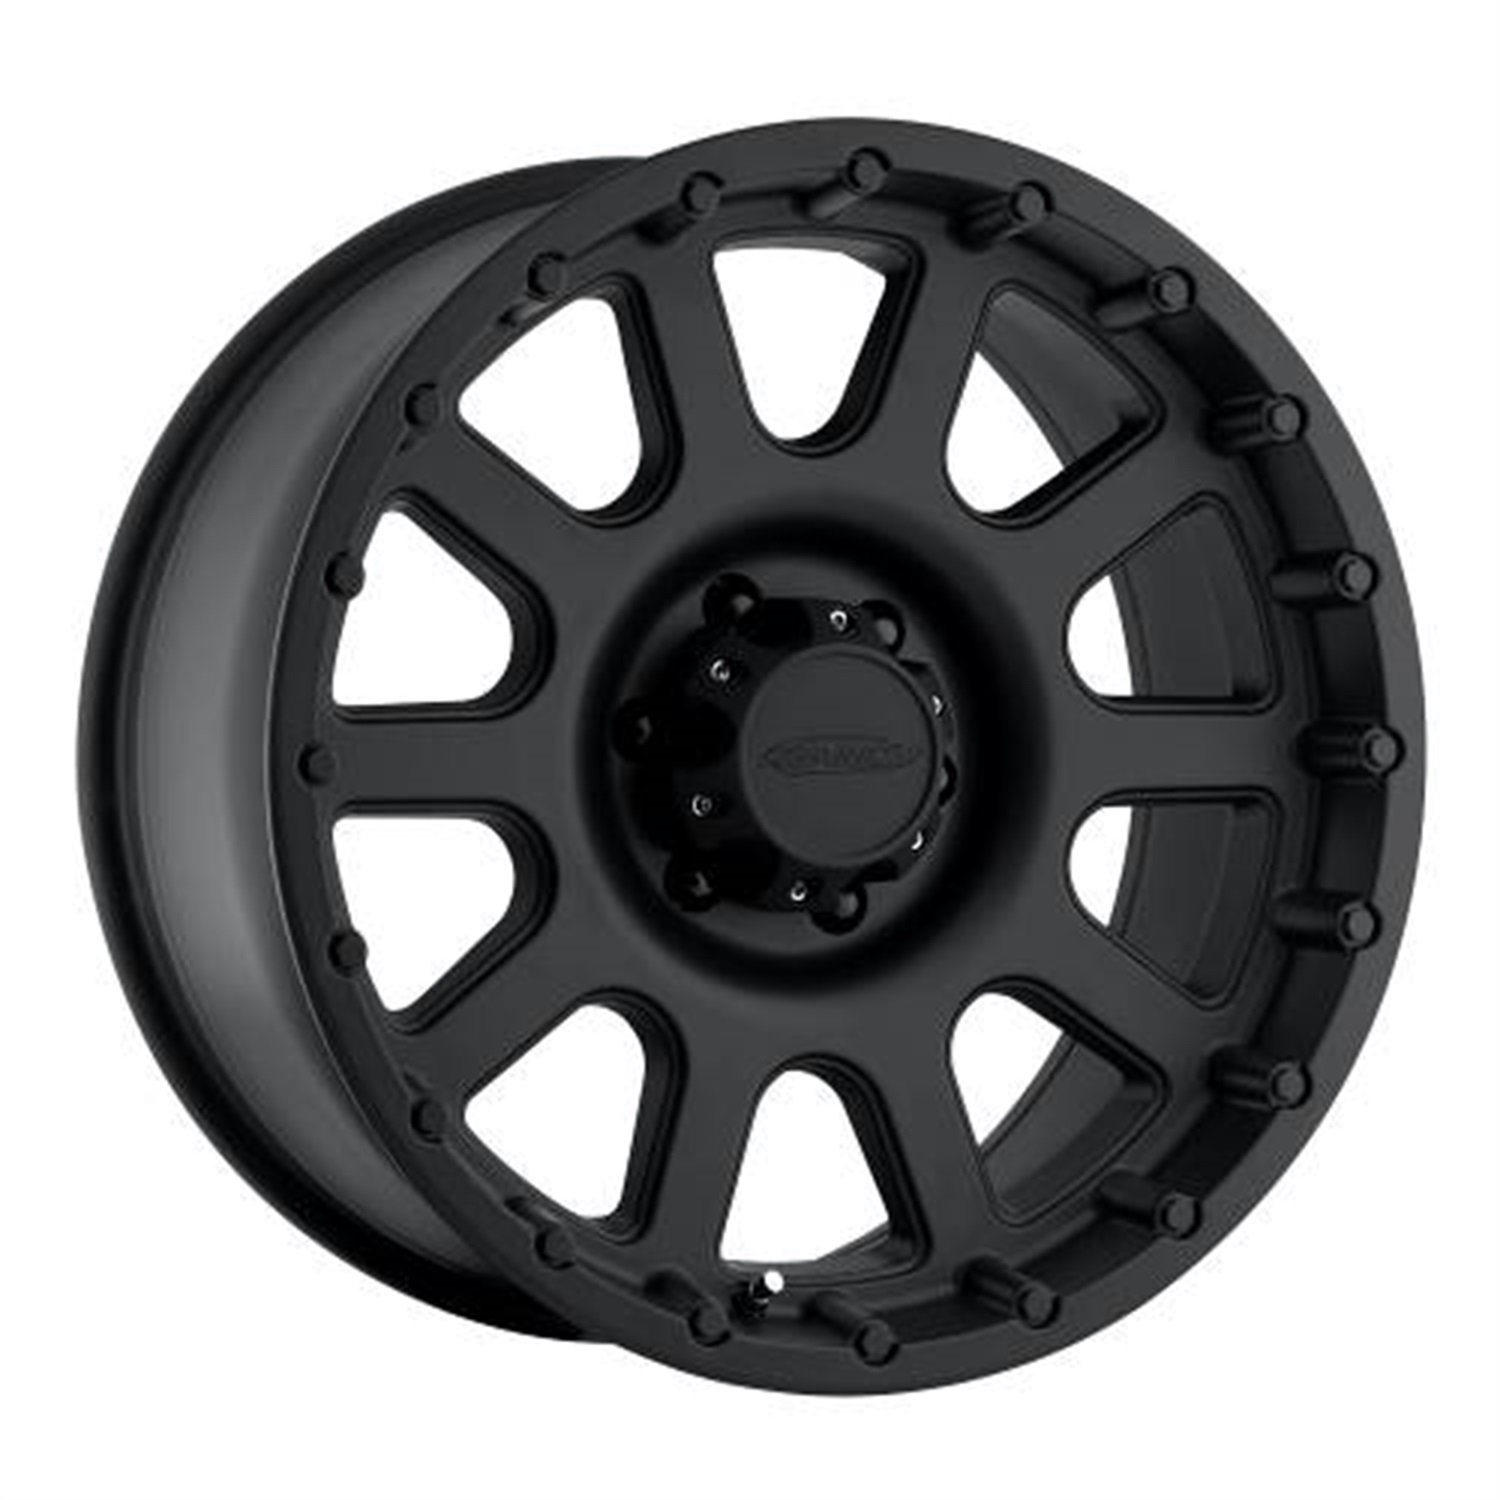 Pro Comp Alloys Series 32 Wheel with Flat Black Finish (18x9''/5x150mm)